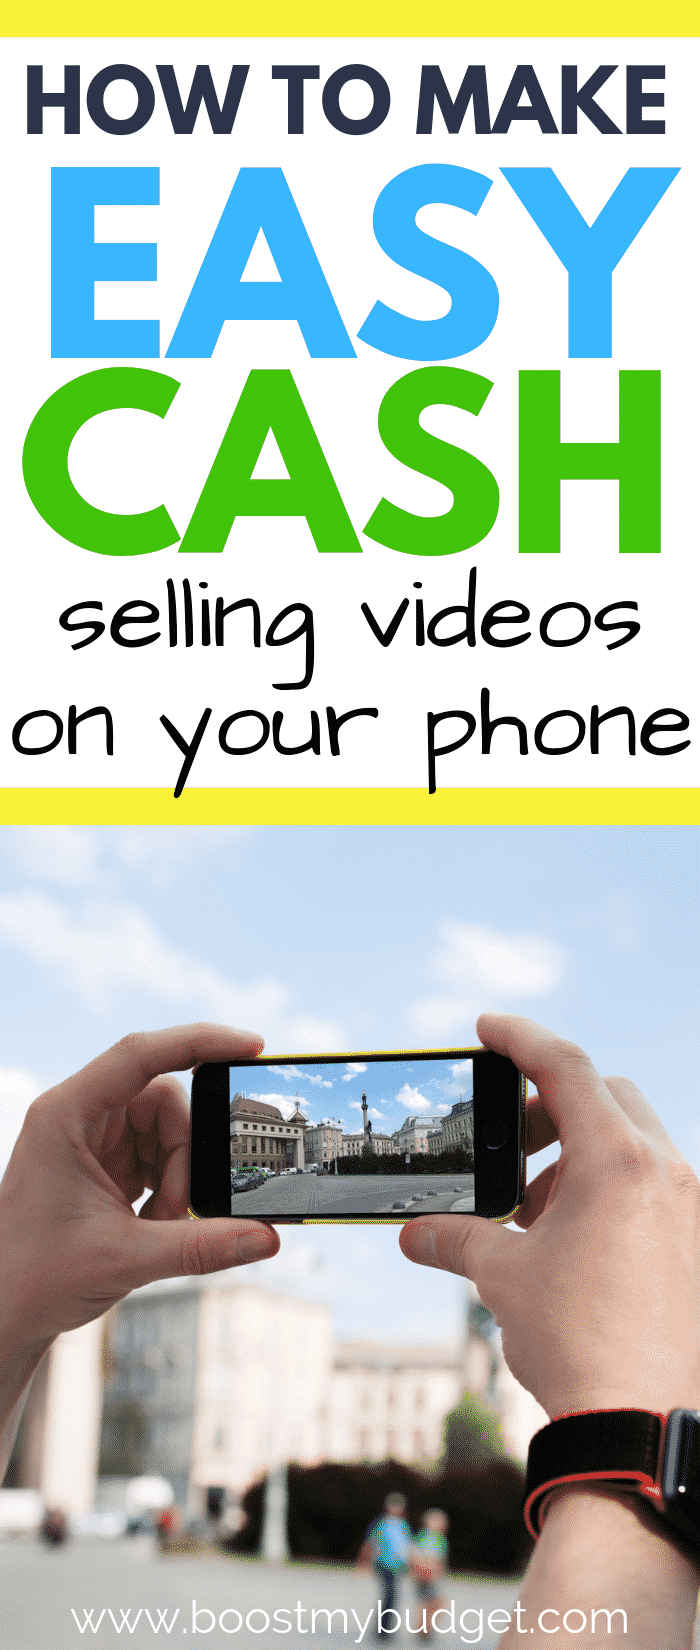 Do you take funny videos on your phone? You can upload them to this website to make money if they go viral! Learn more here!